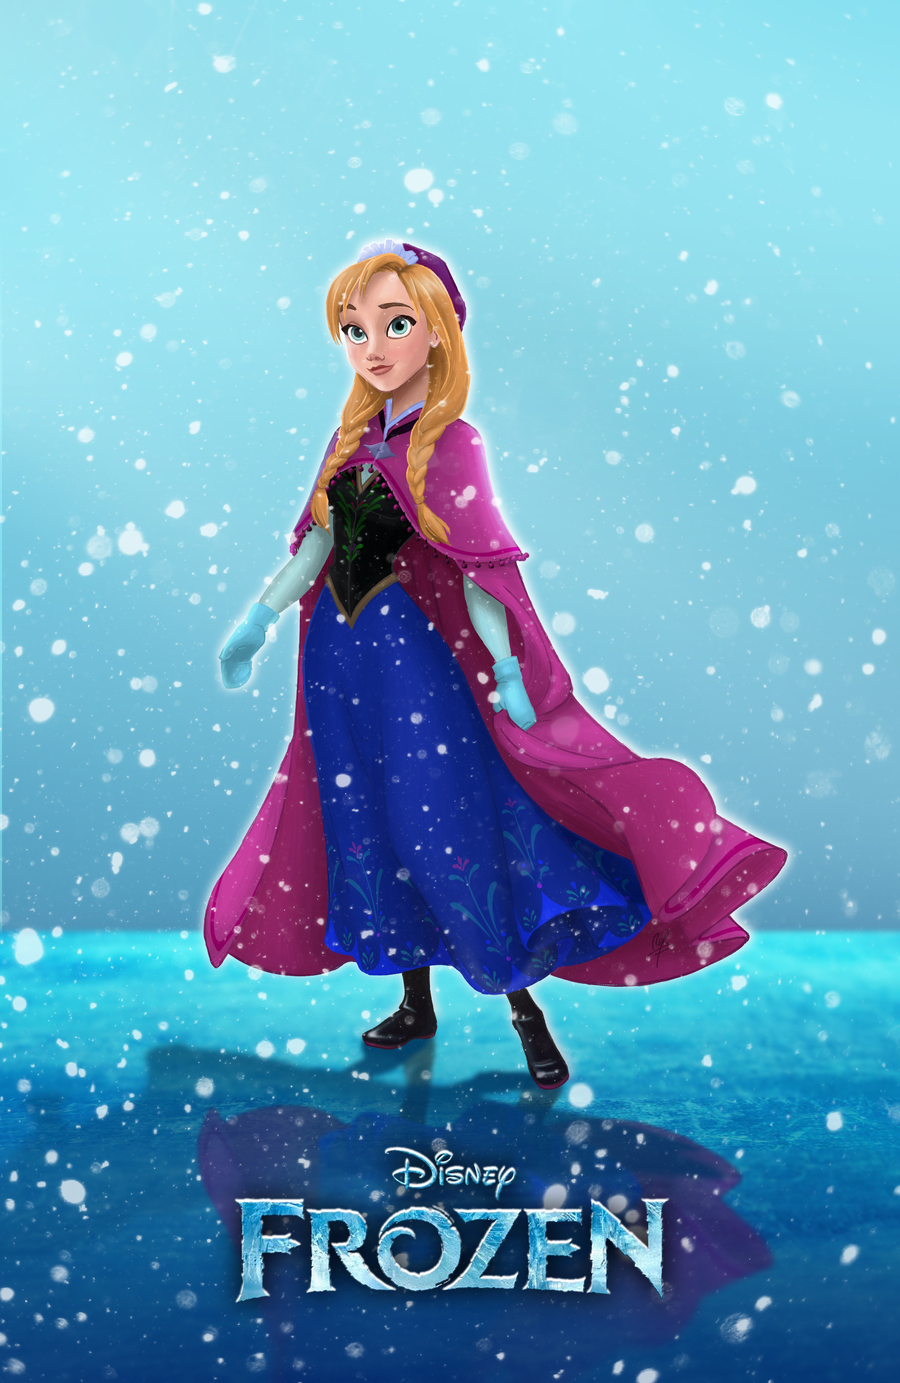 Disney Princess Anna (Frozen)